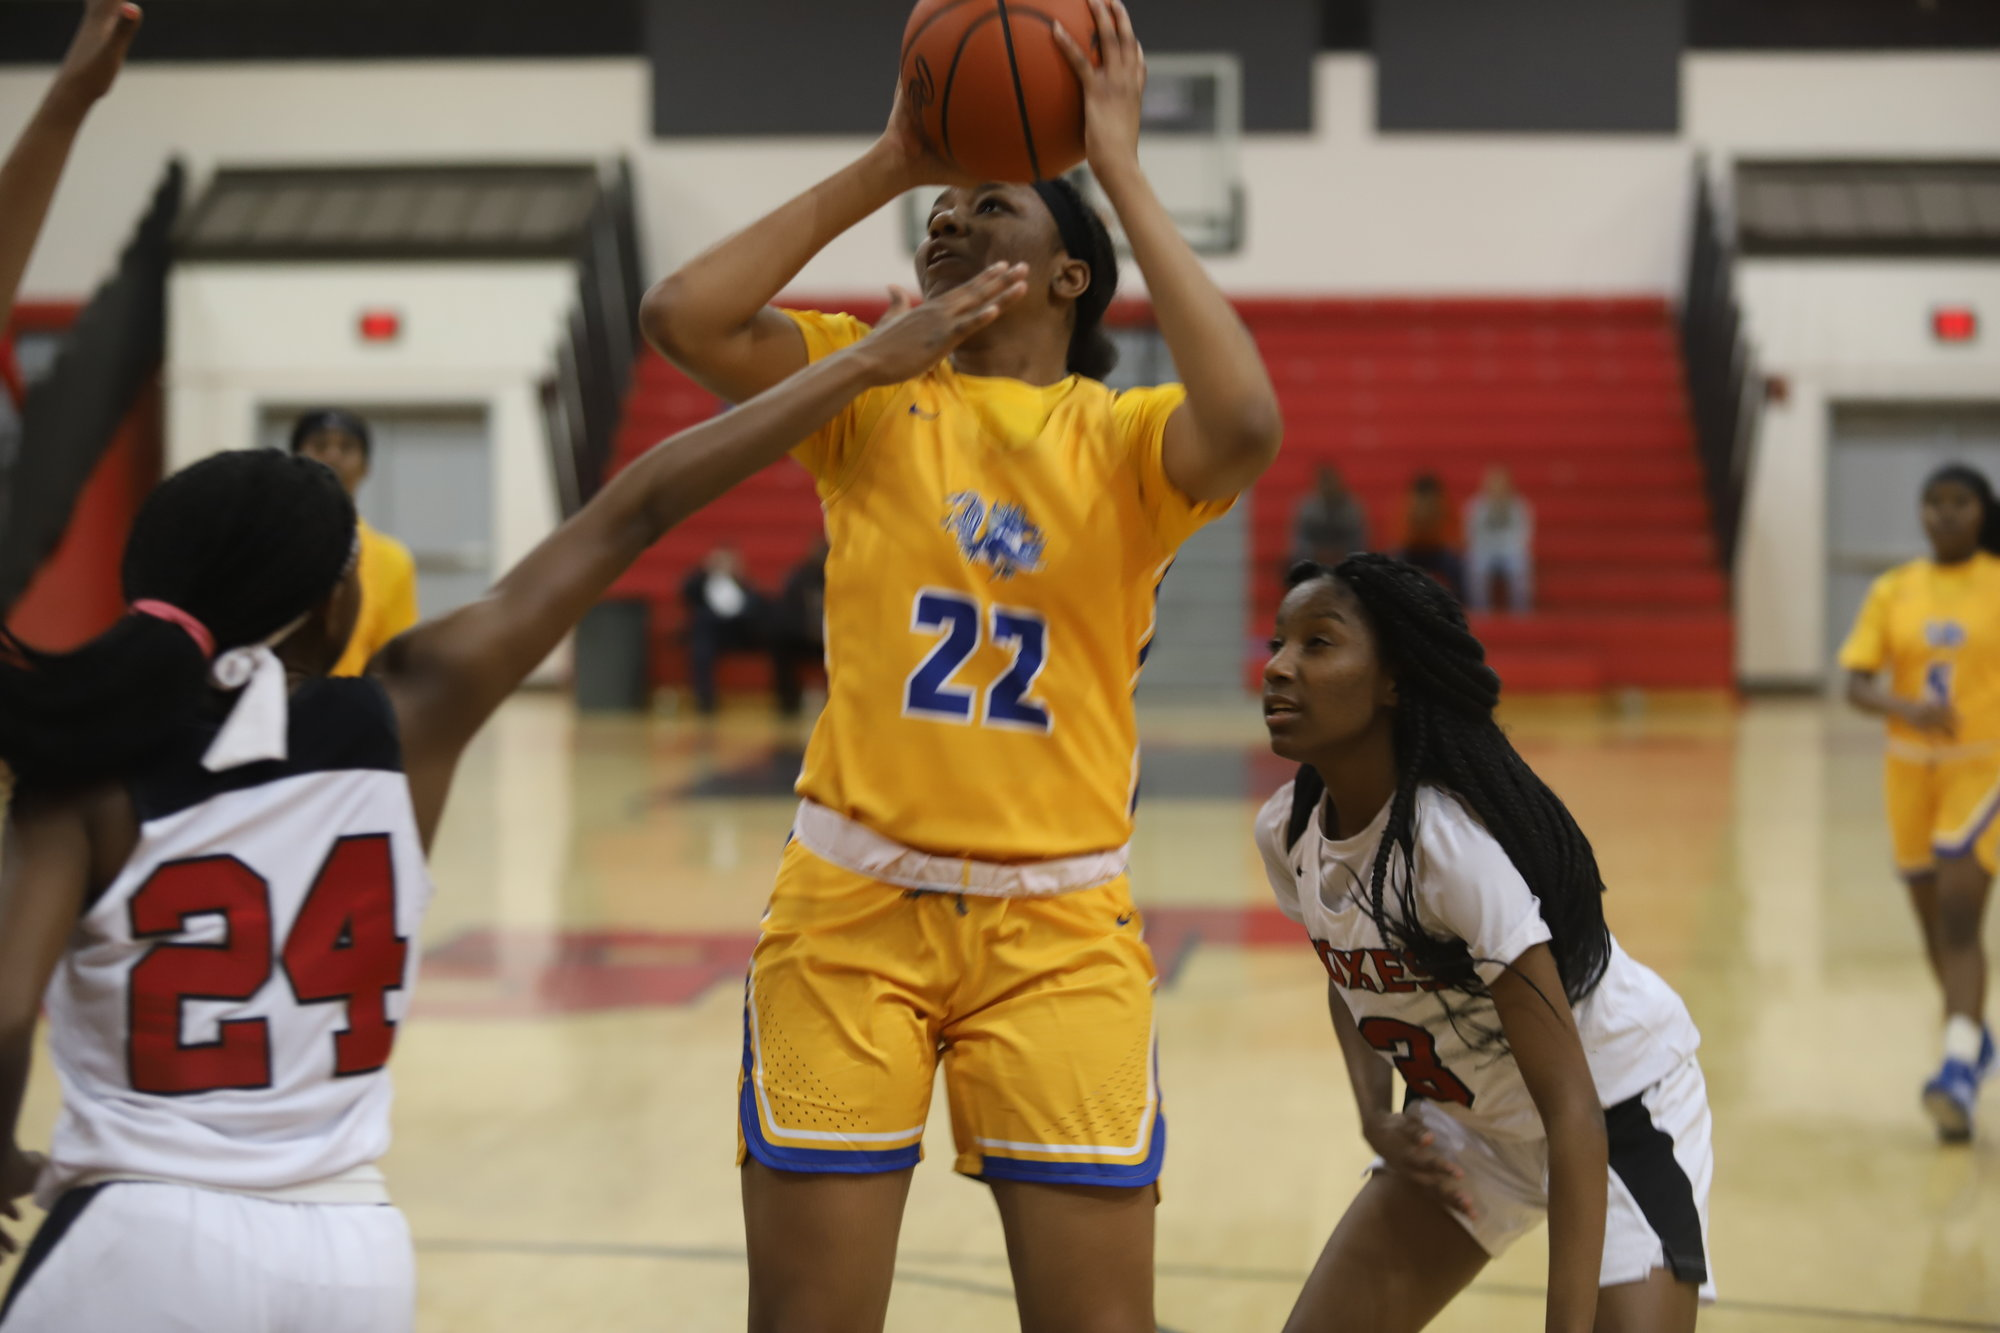 The Sumter girls are ranked fifth in 5A on the newest SCBCA polls.